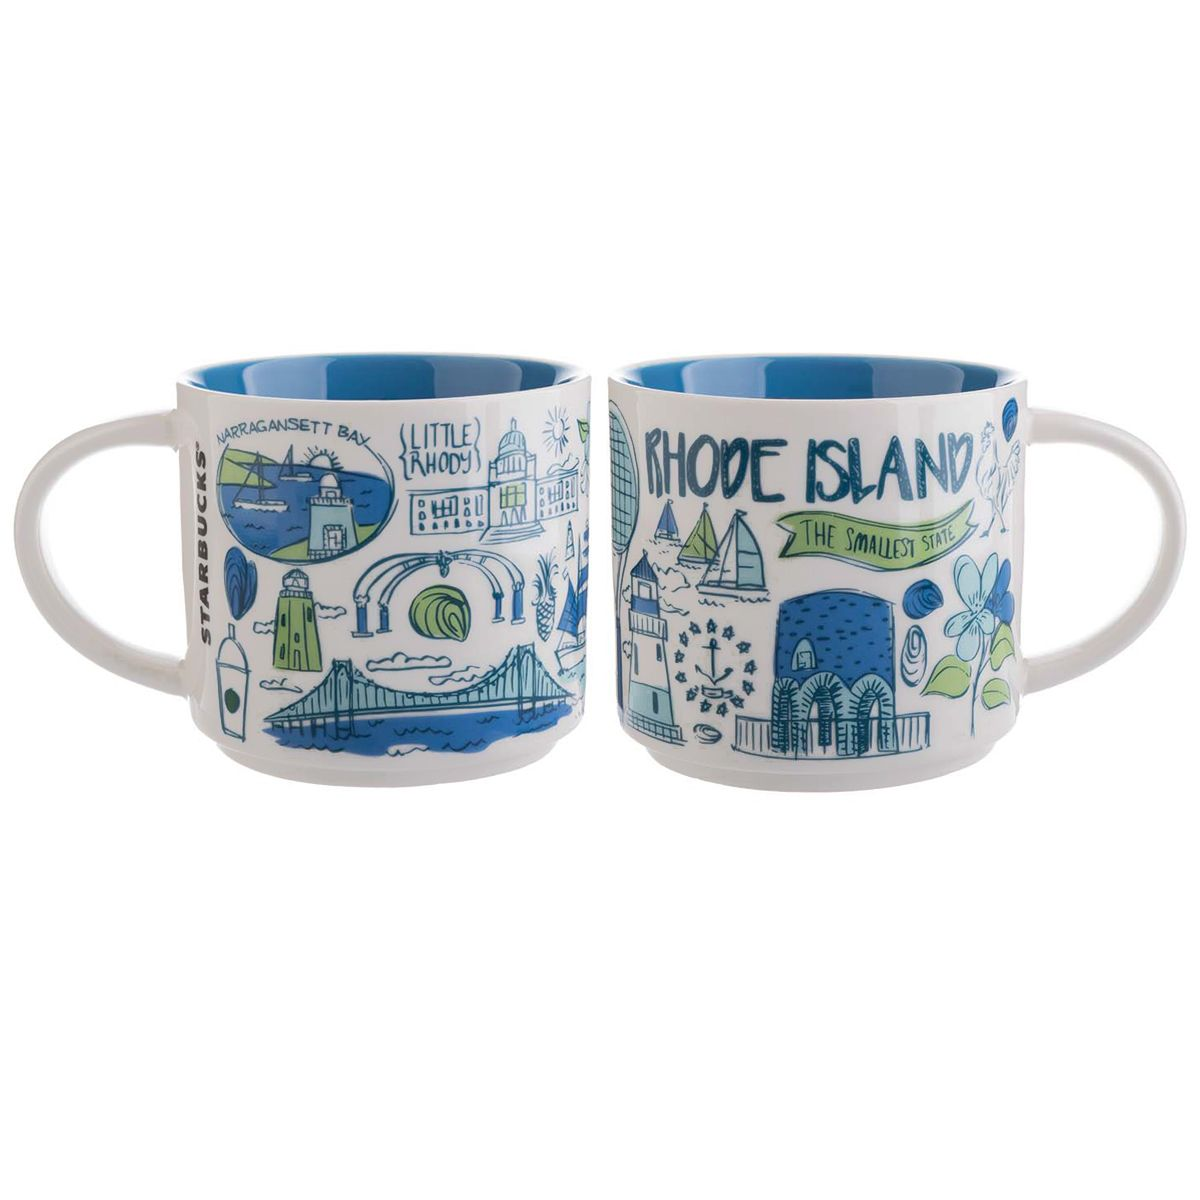 Rhode Island A Collectible Mug From The Starbucks Been There Collection Starbucks Mugs Starbucks Lovers Best Starbucks Coffee